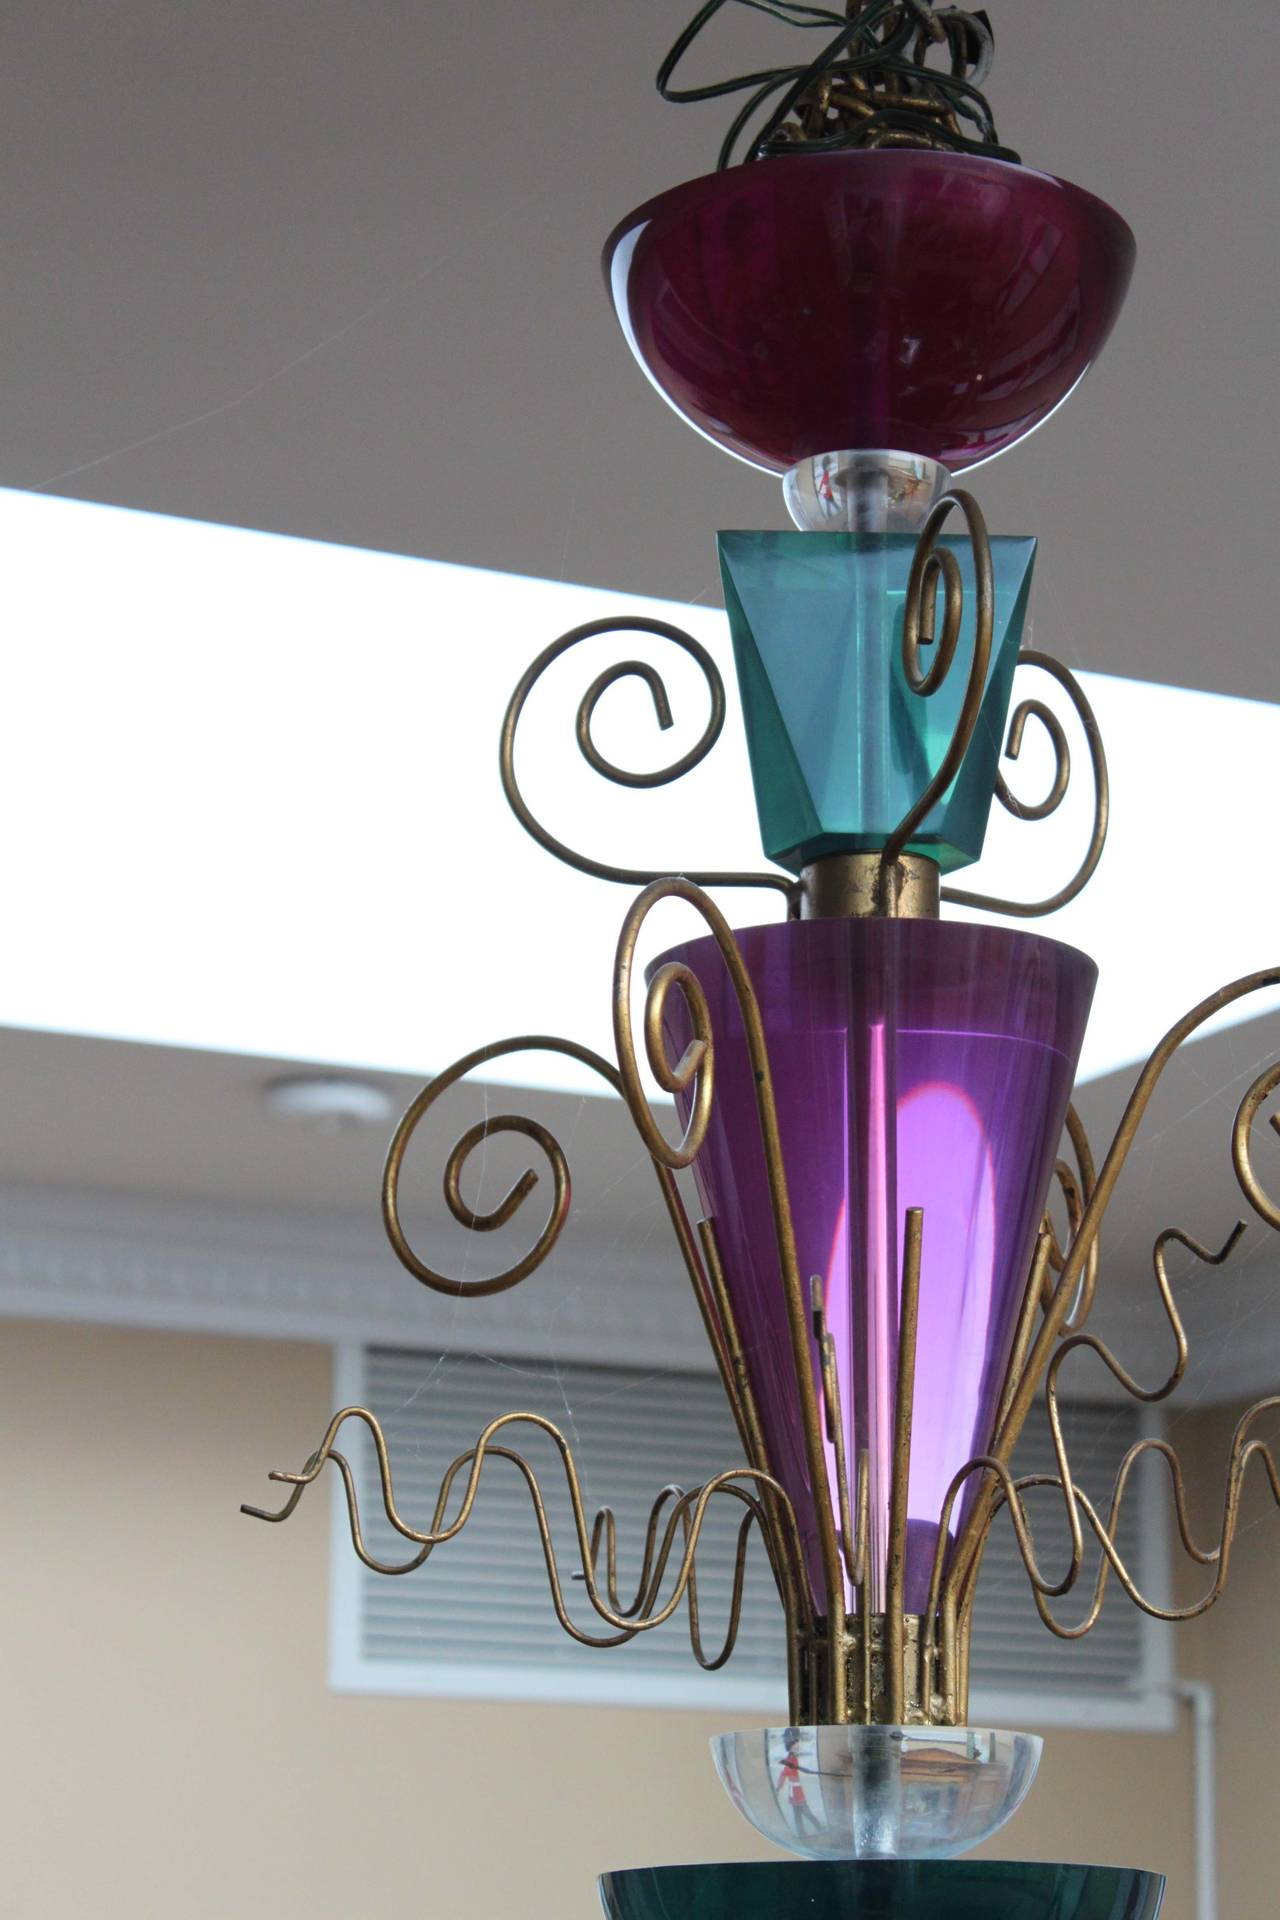 Unusual Lucite Pendant Light Fixture Attributed to Van Teal For